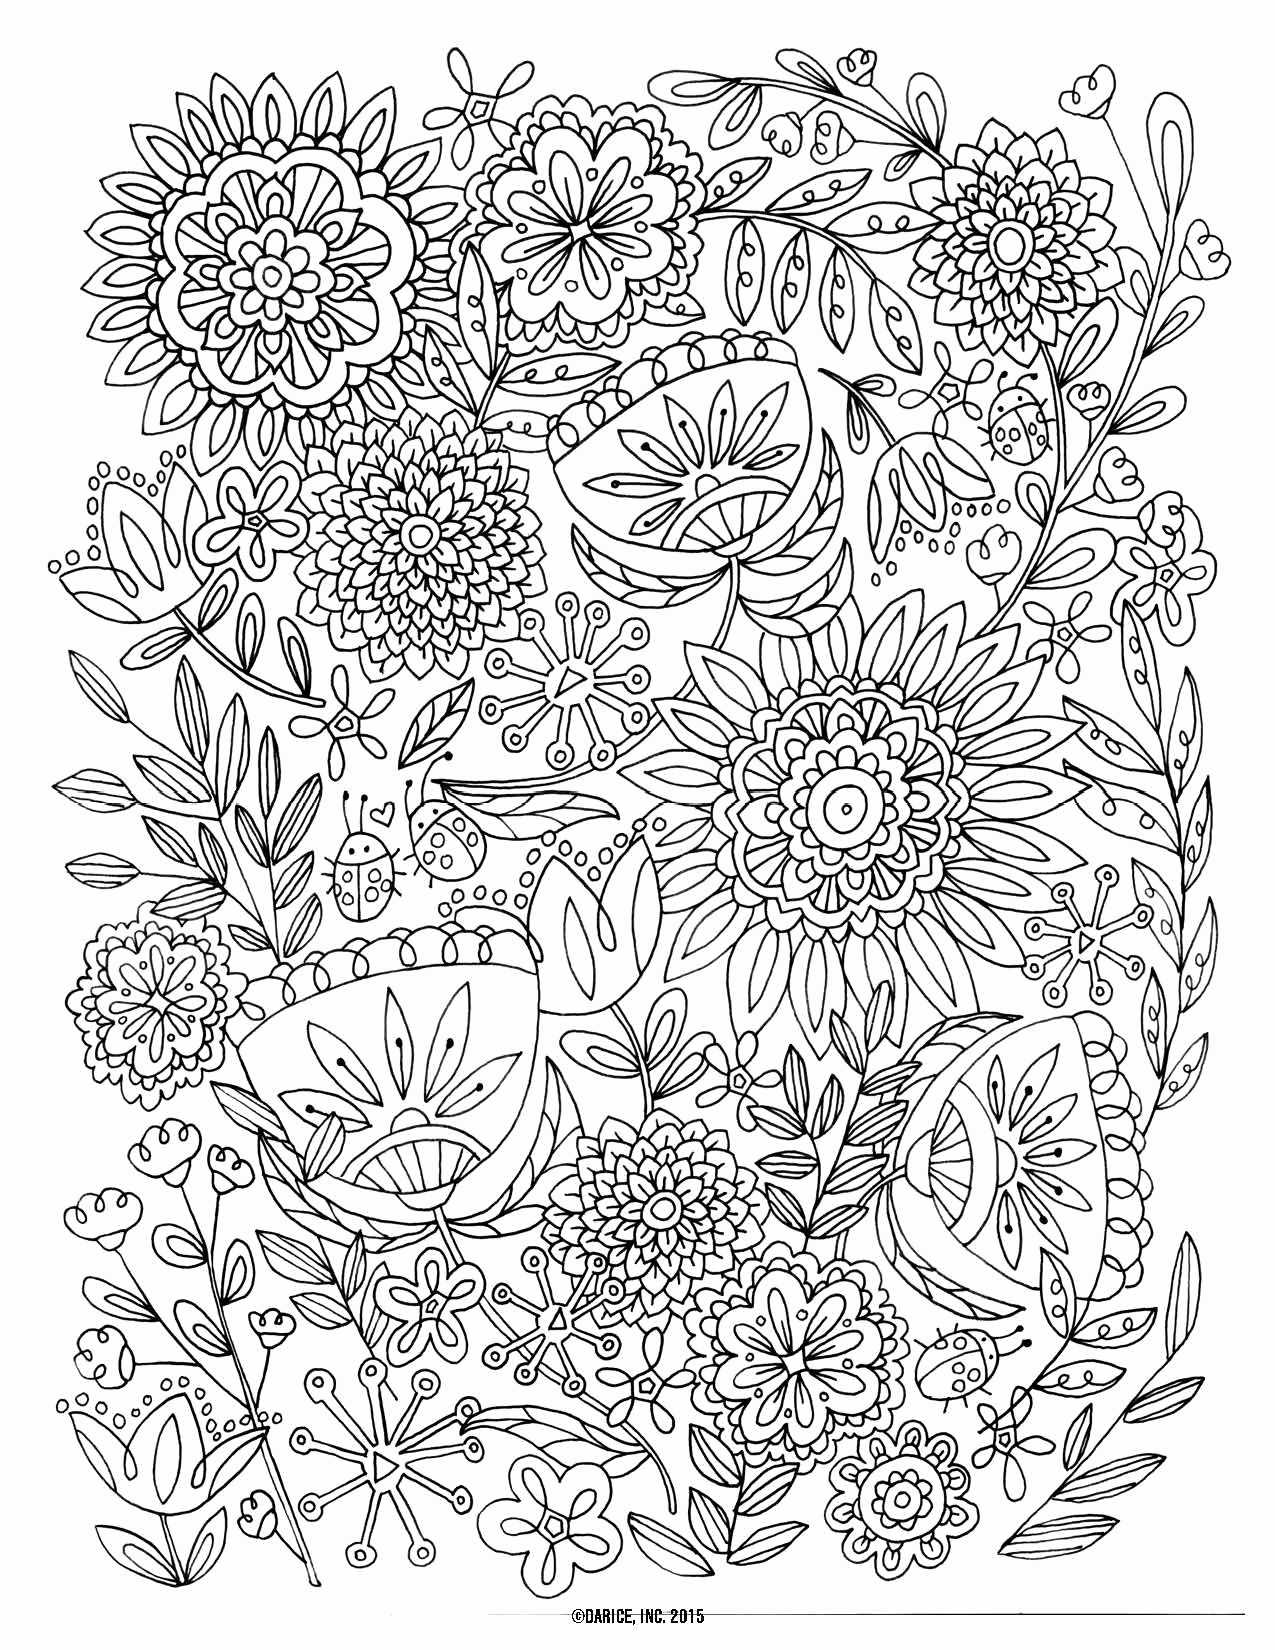 Coloring Worksheets for Preschool or Printable Od Dog Coloring Pages Free Colouring Pages – Fun Time